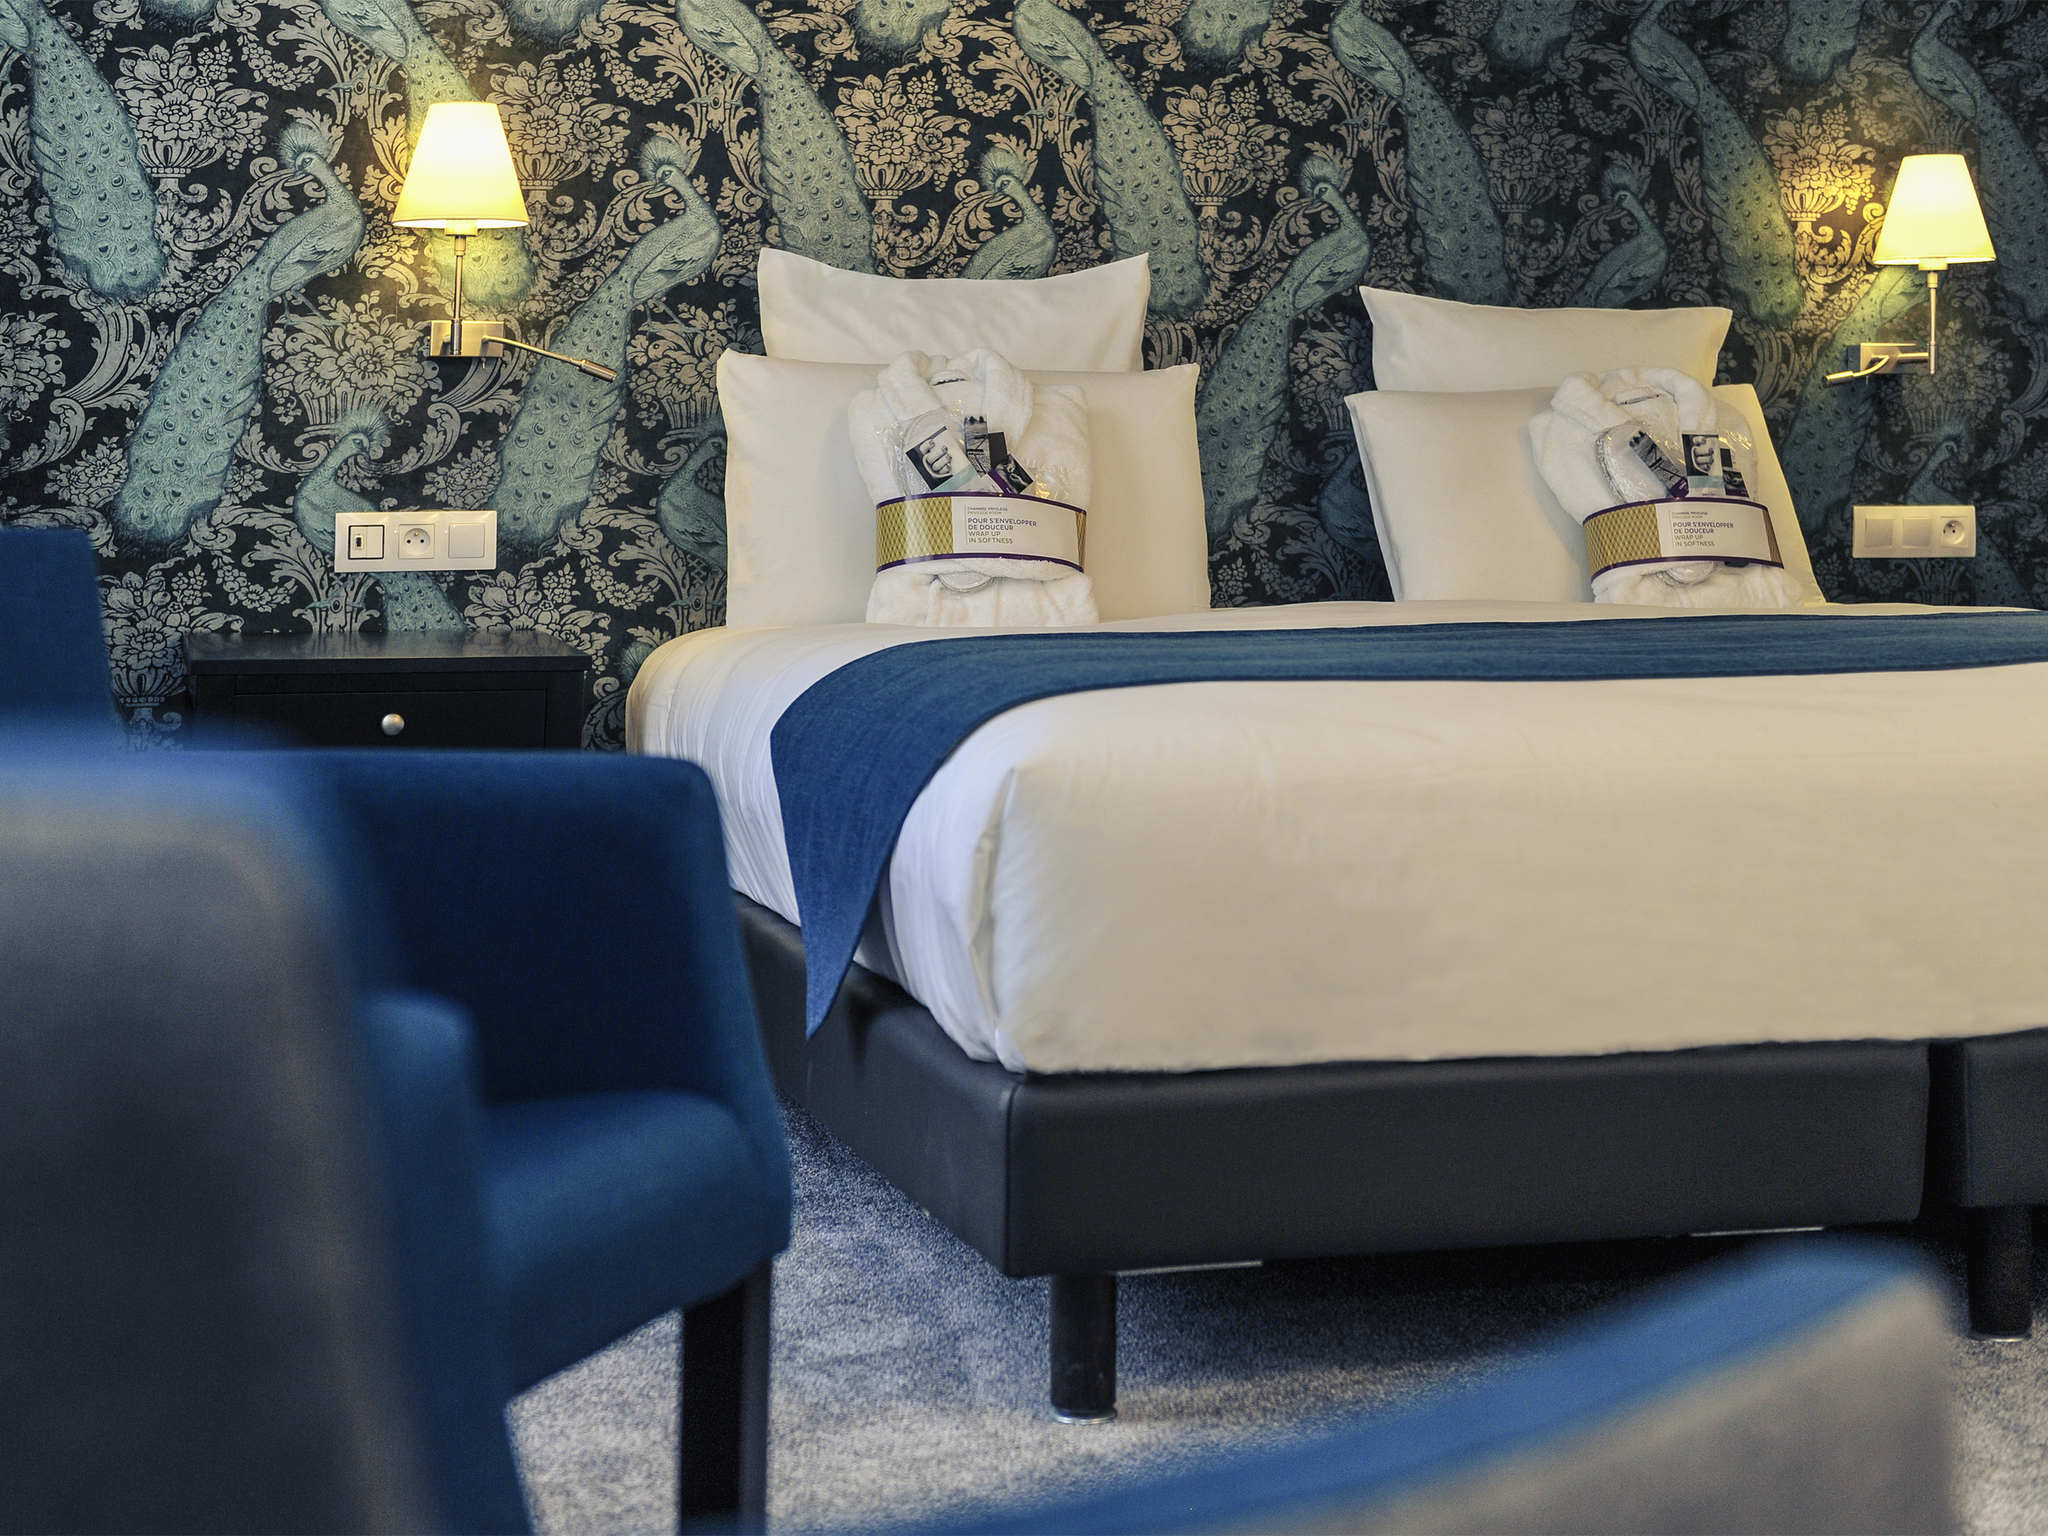 Hotel – Hôtel Mercure Paris Saint-Cloud Hippodrome